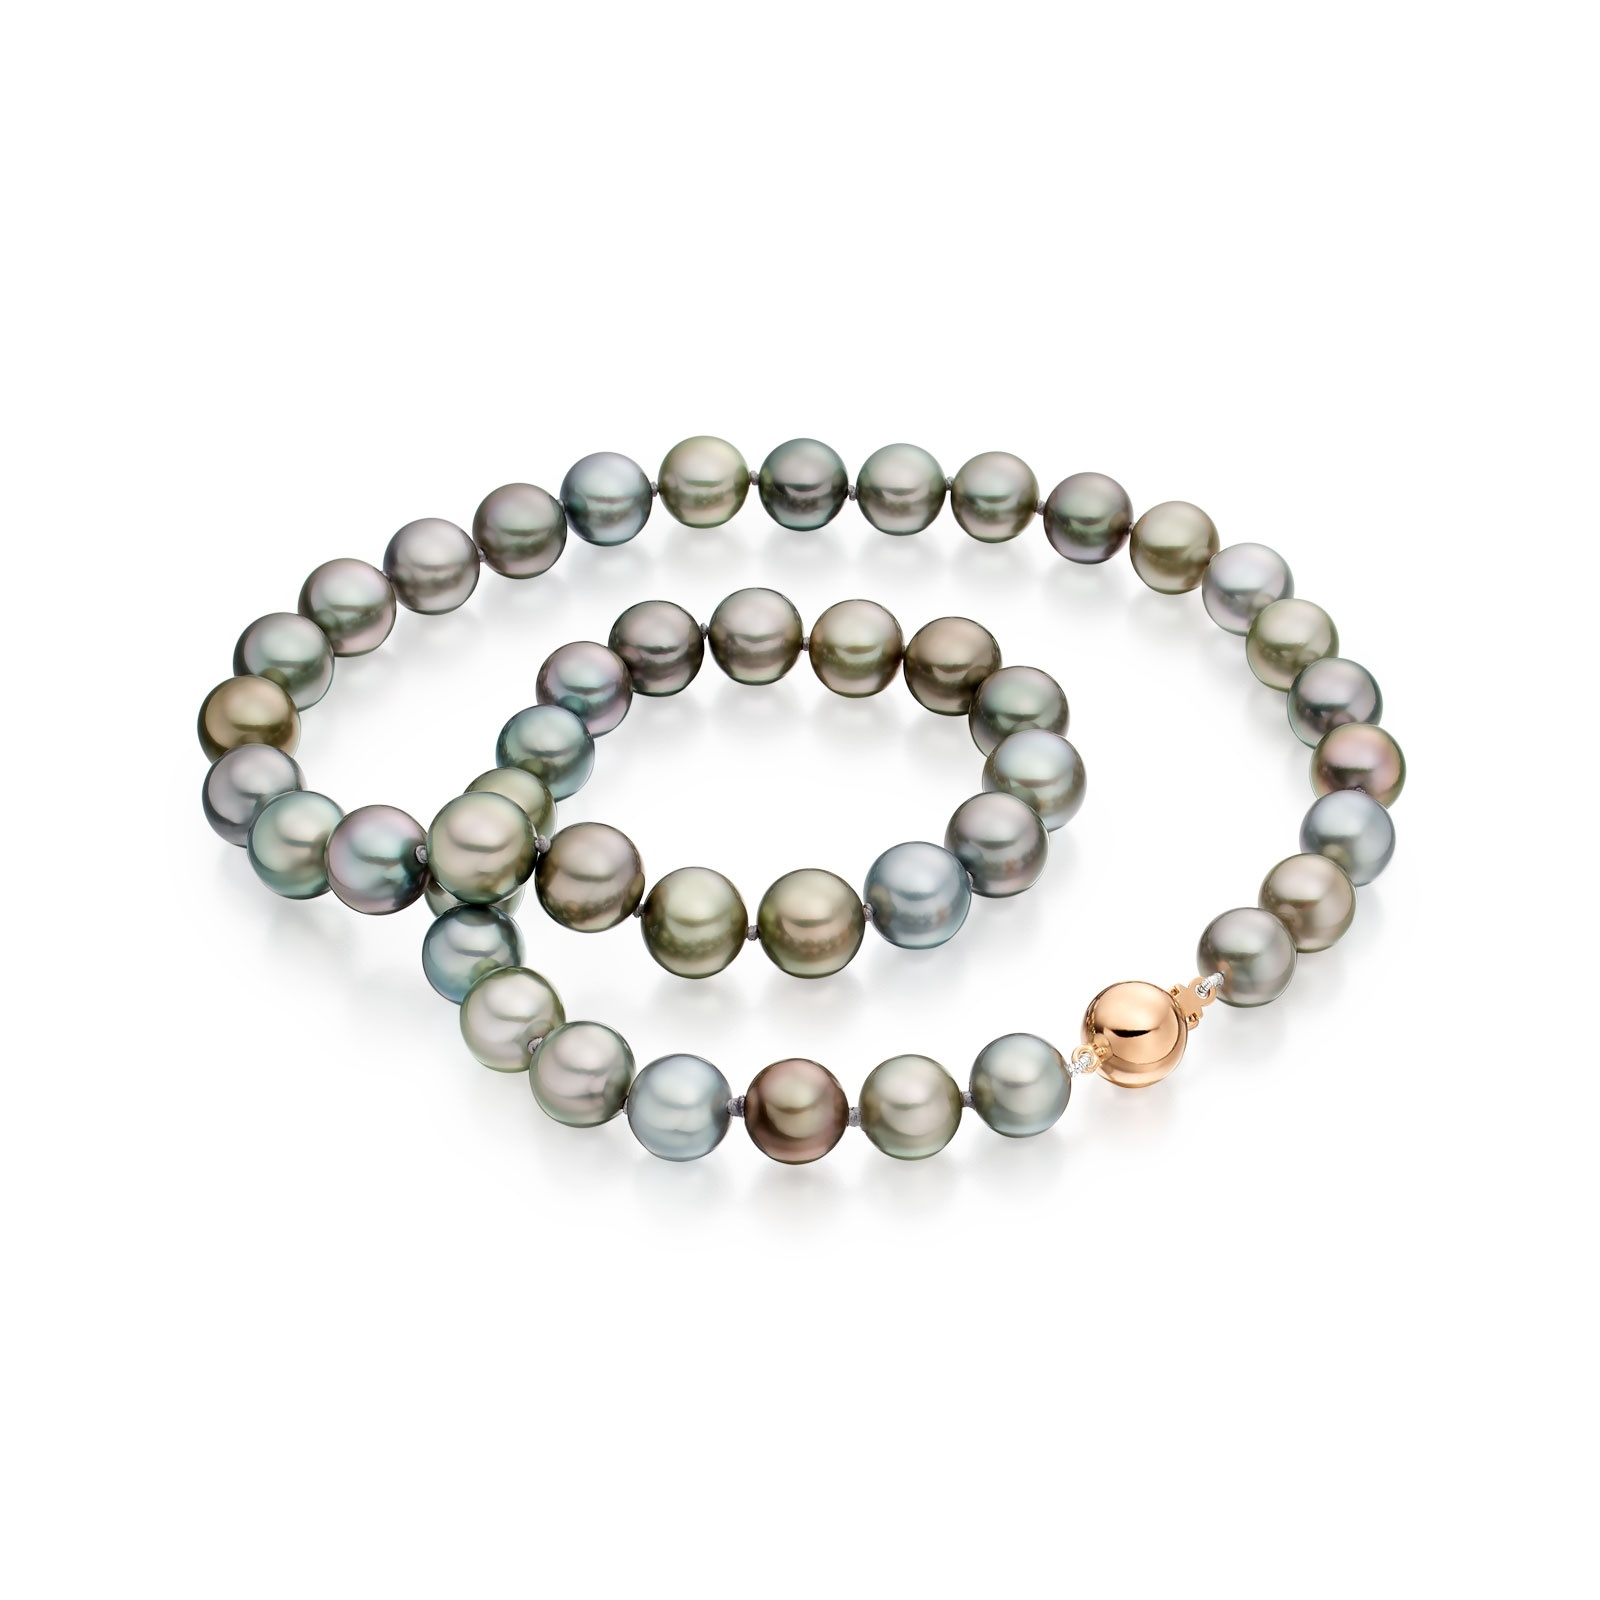 Pastel Grey Tahitian Pearl Necklace with Rose Gold-TNMRRG1022-1